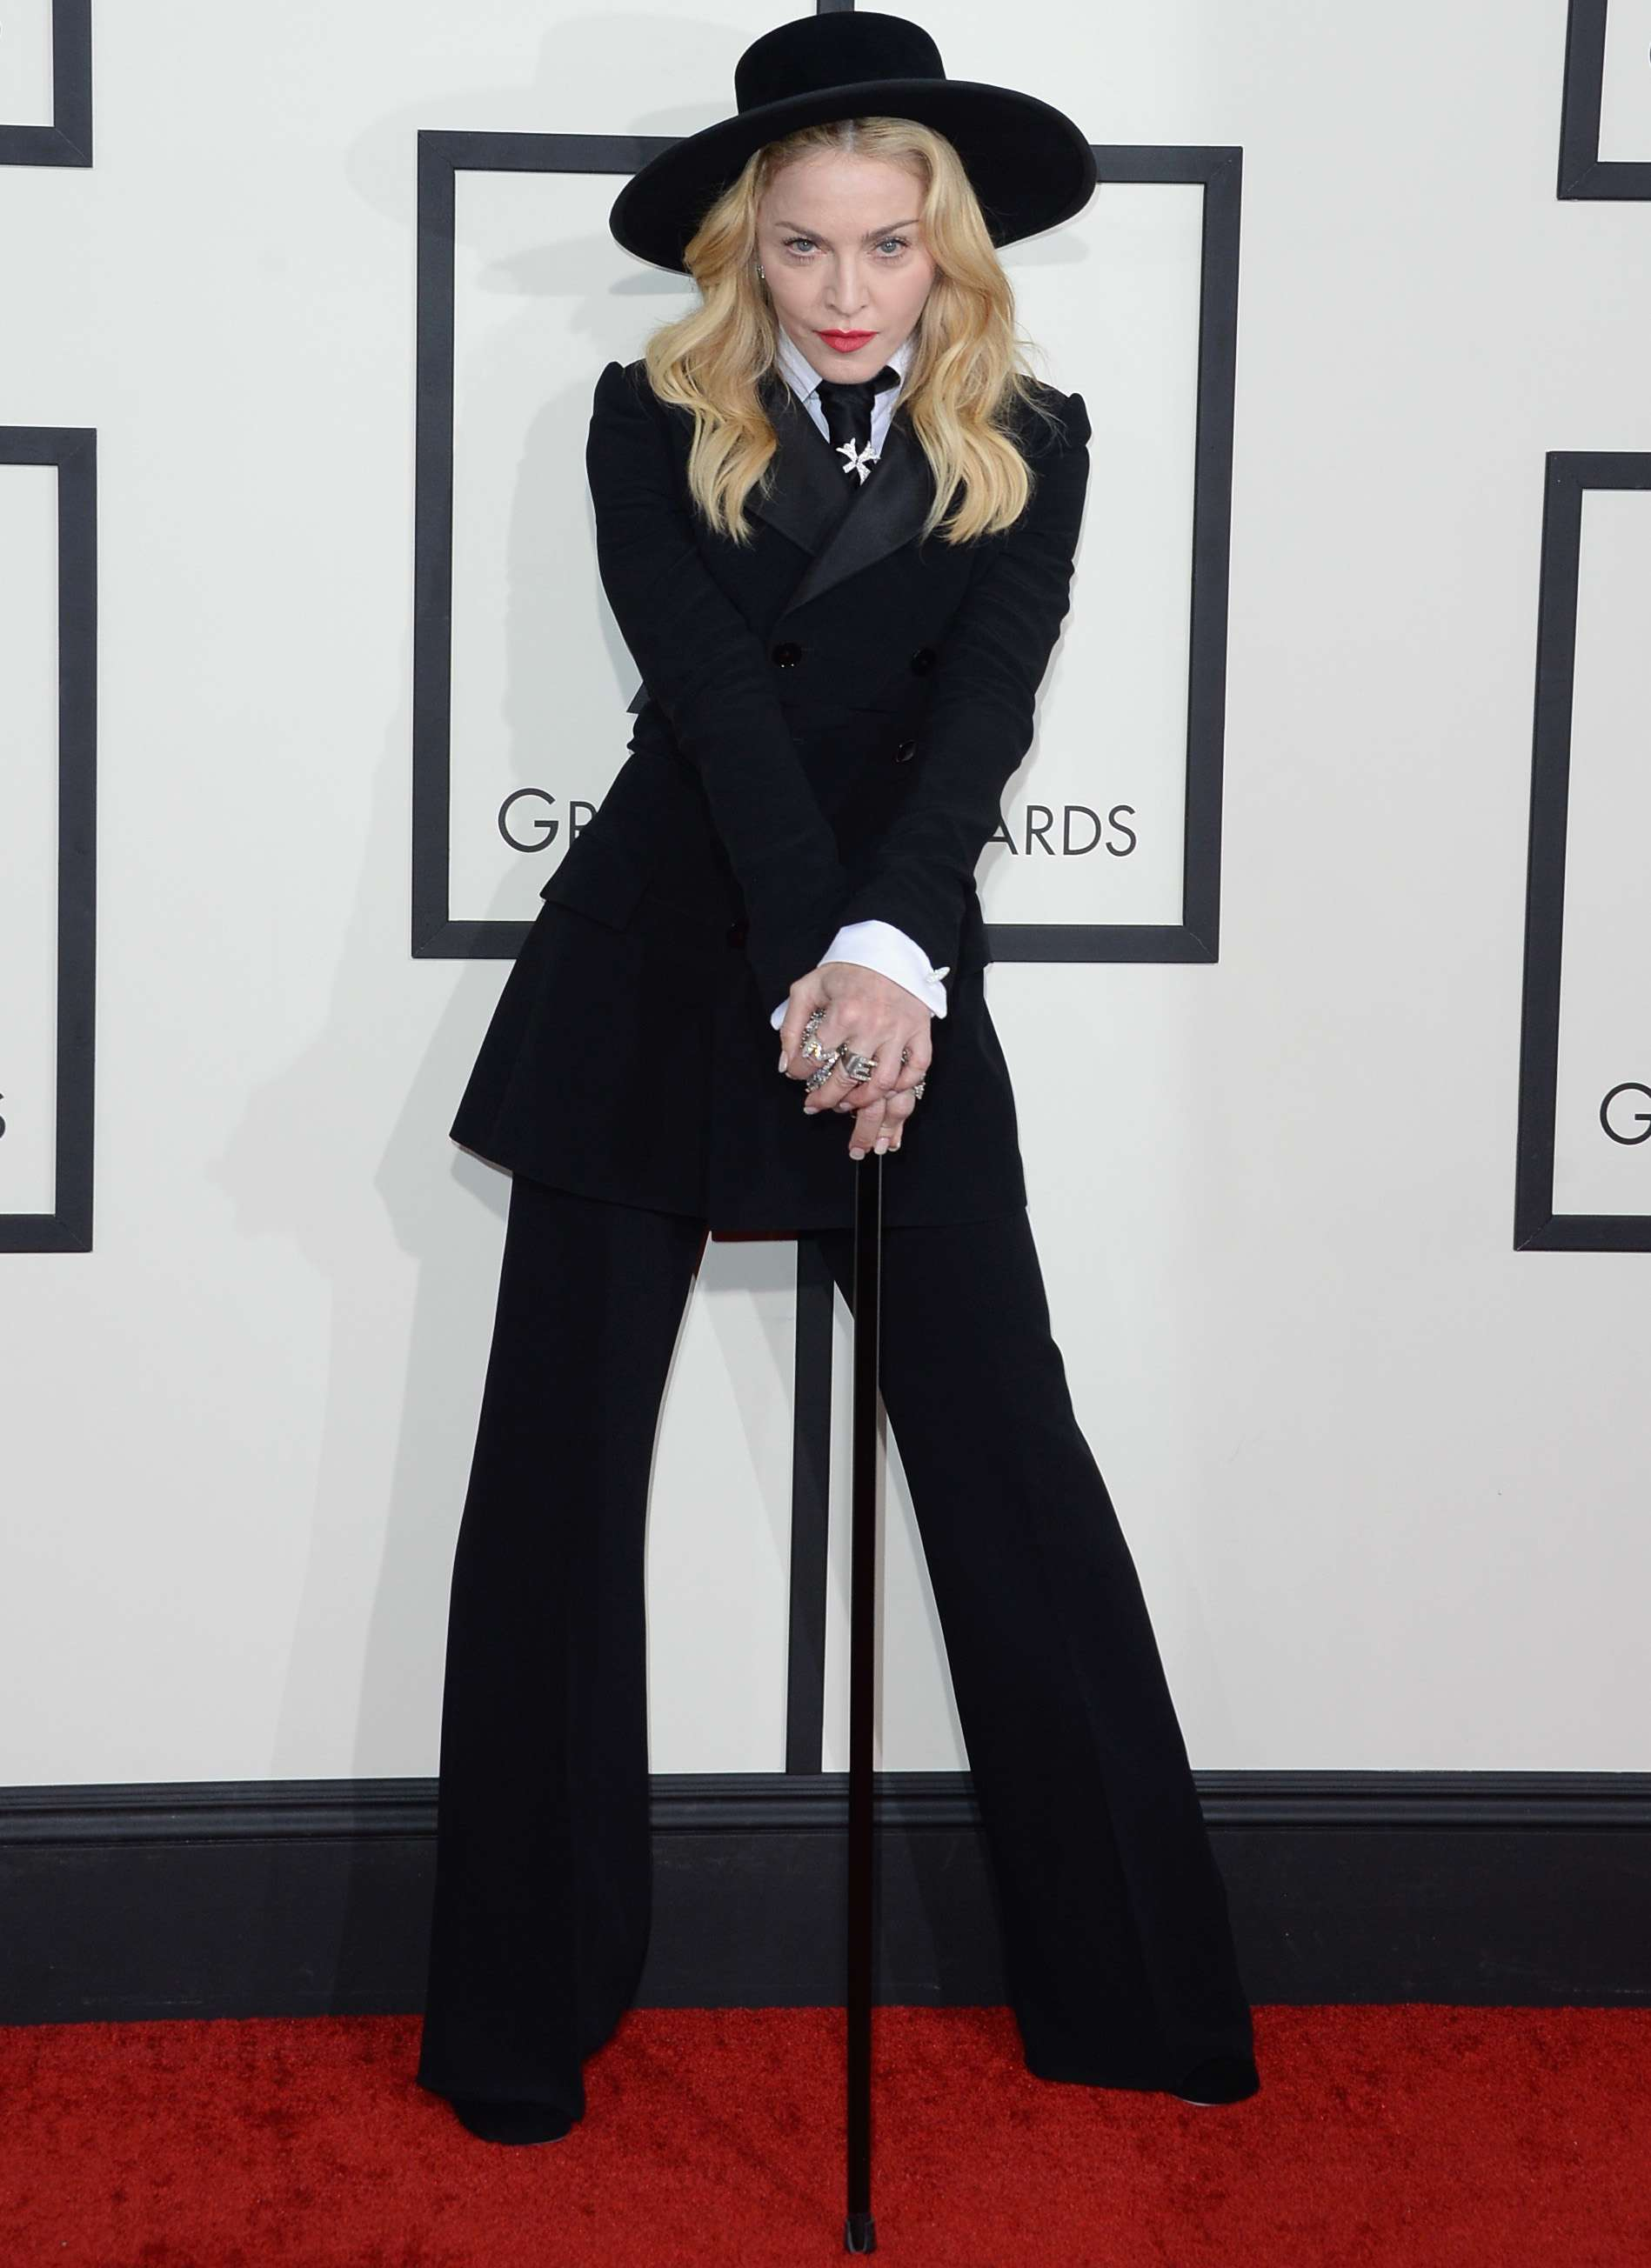 Madonna cantará 'Living For Love' en la próxima entrega de los Grammy. Foto: Getty Images